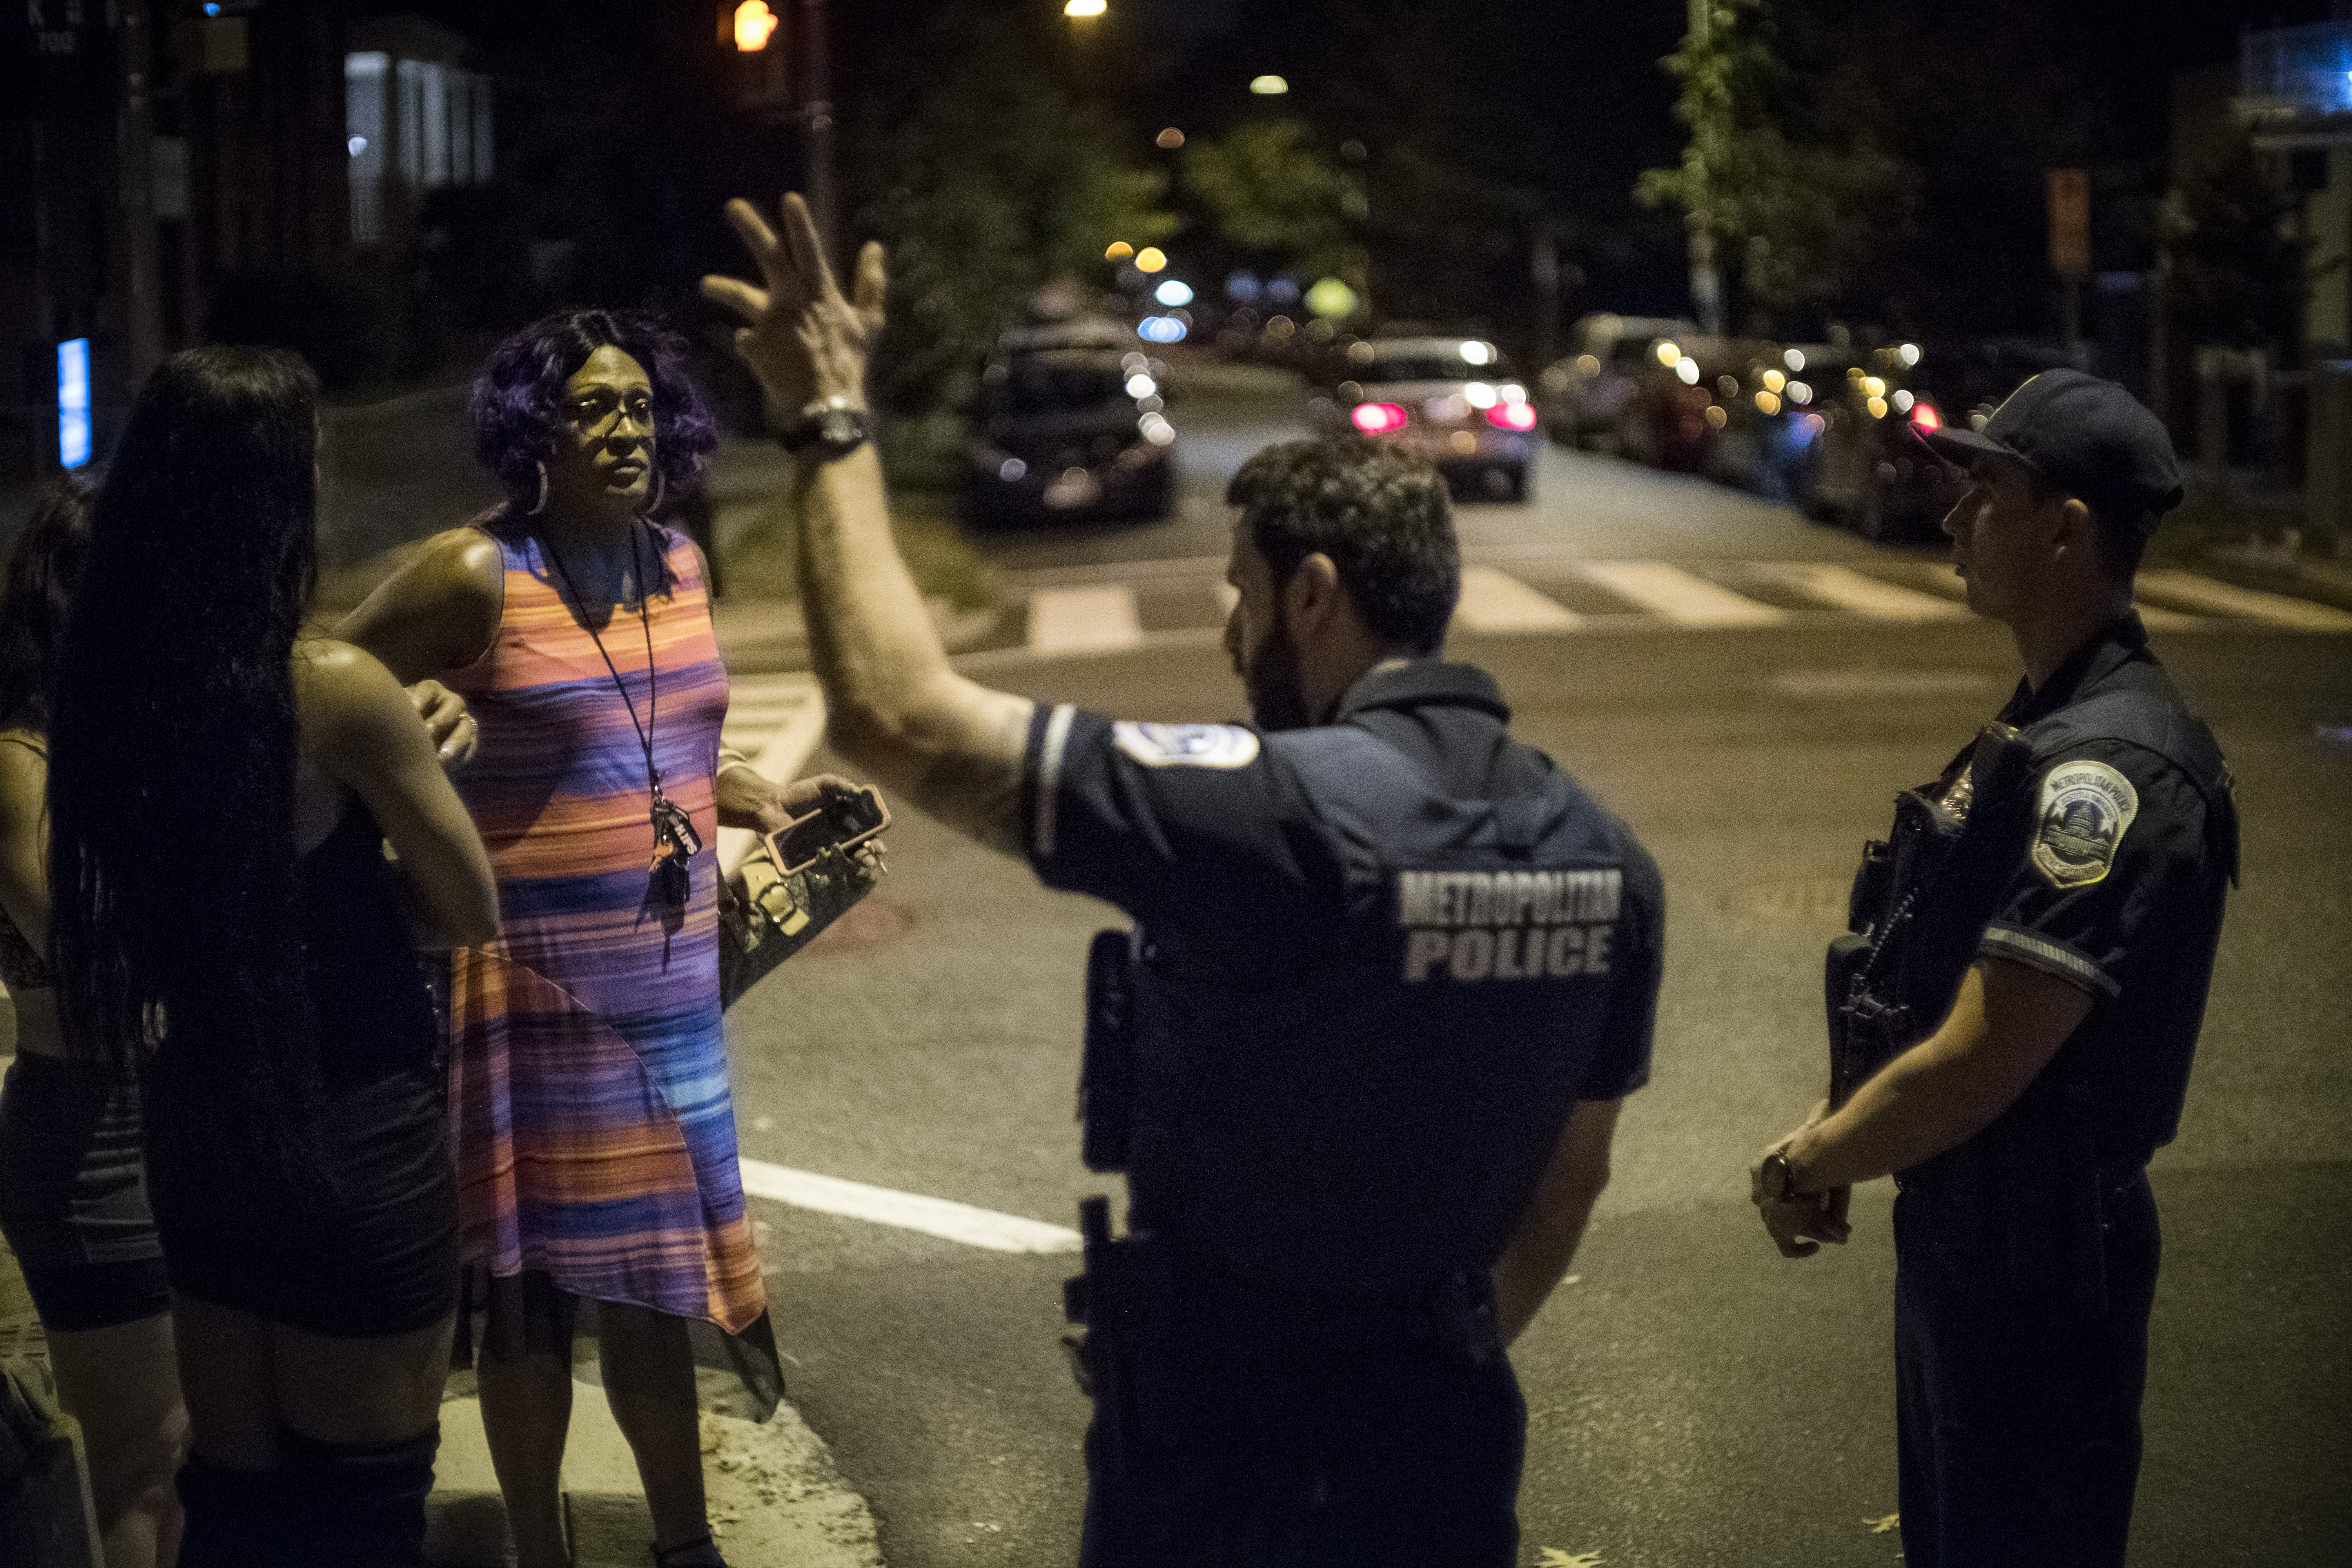 A woman talks with two police officers on a street at night